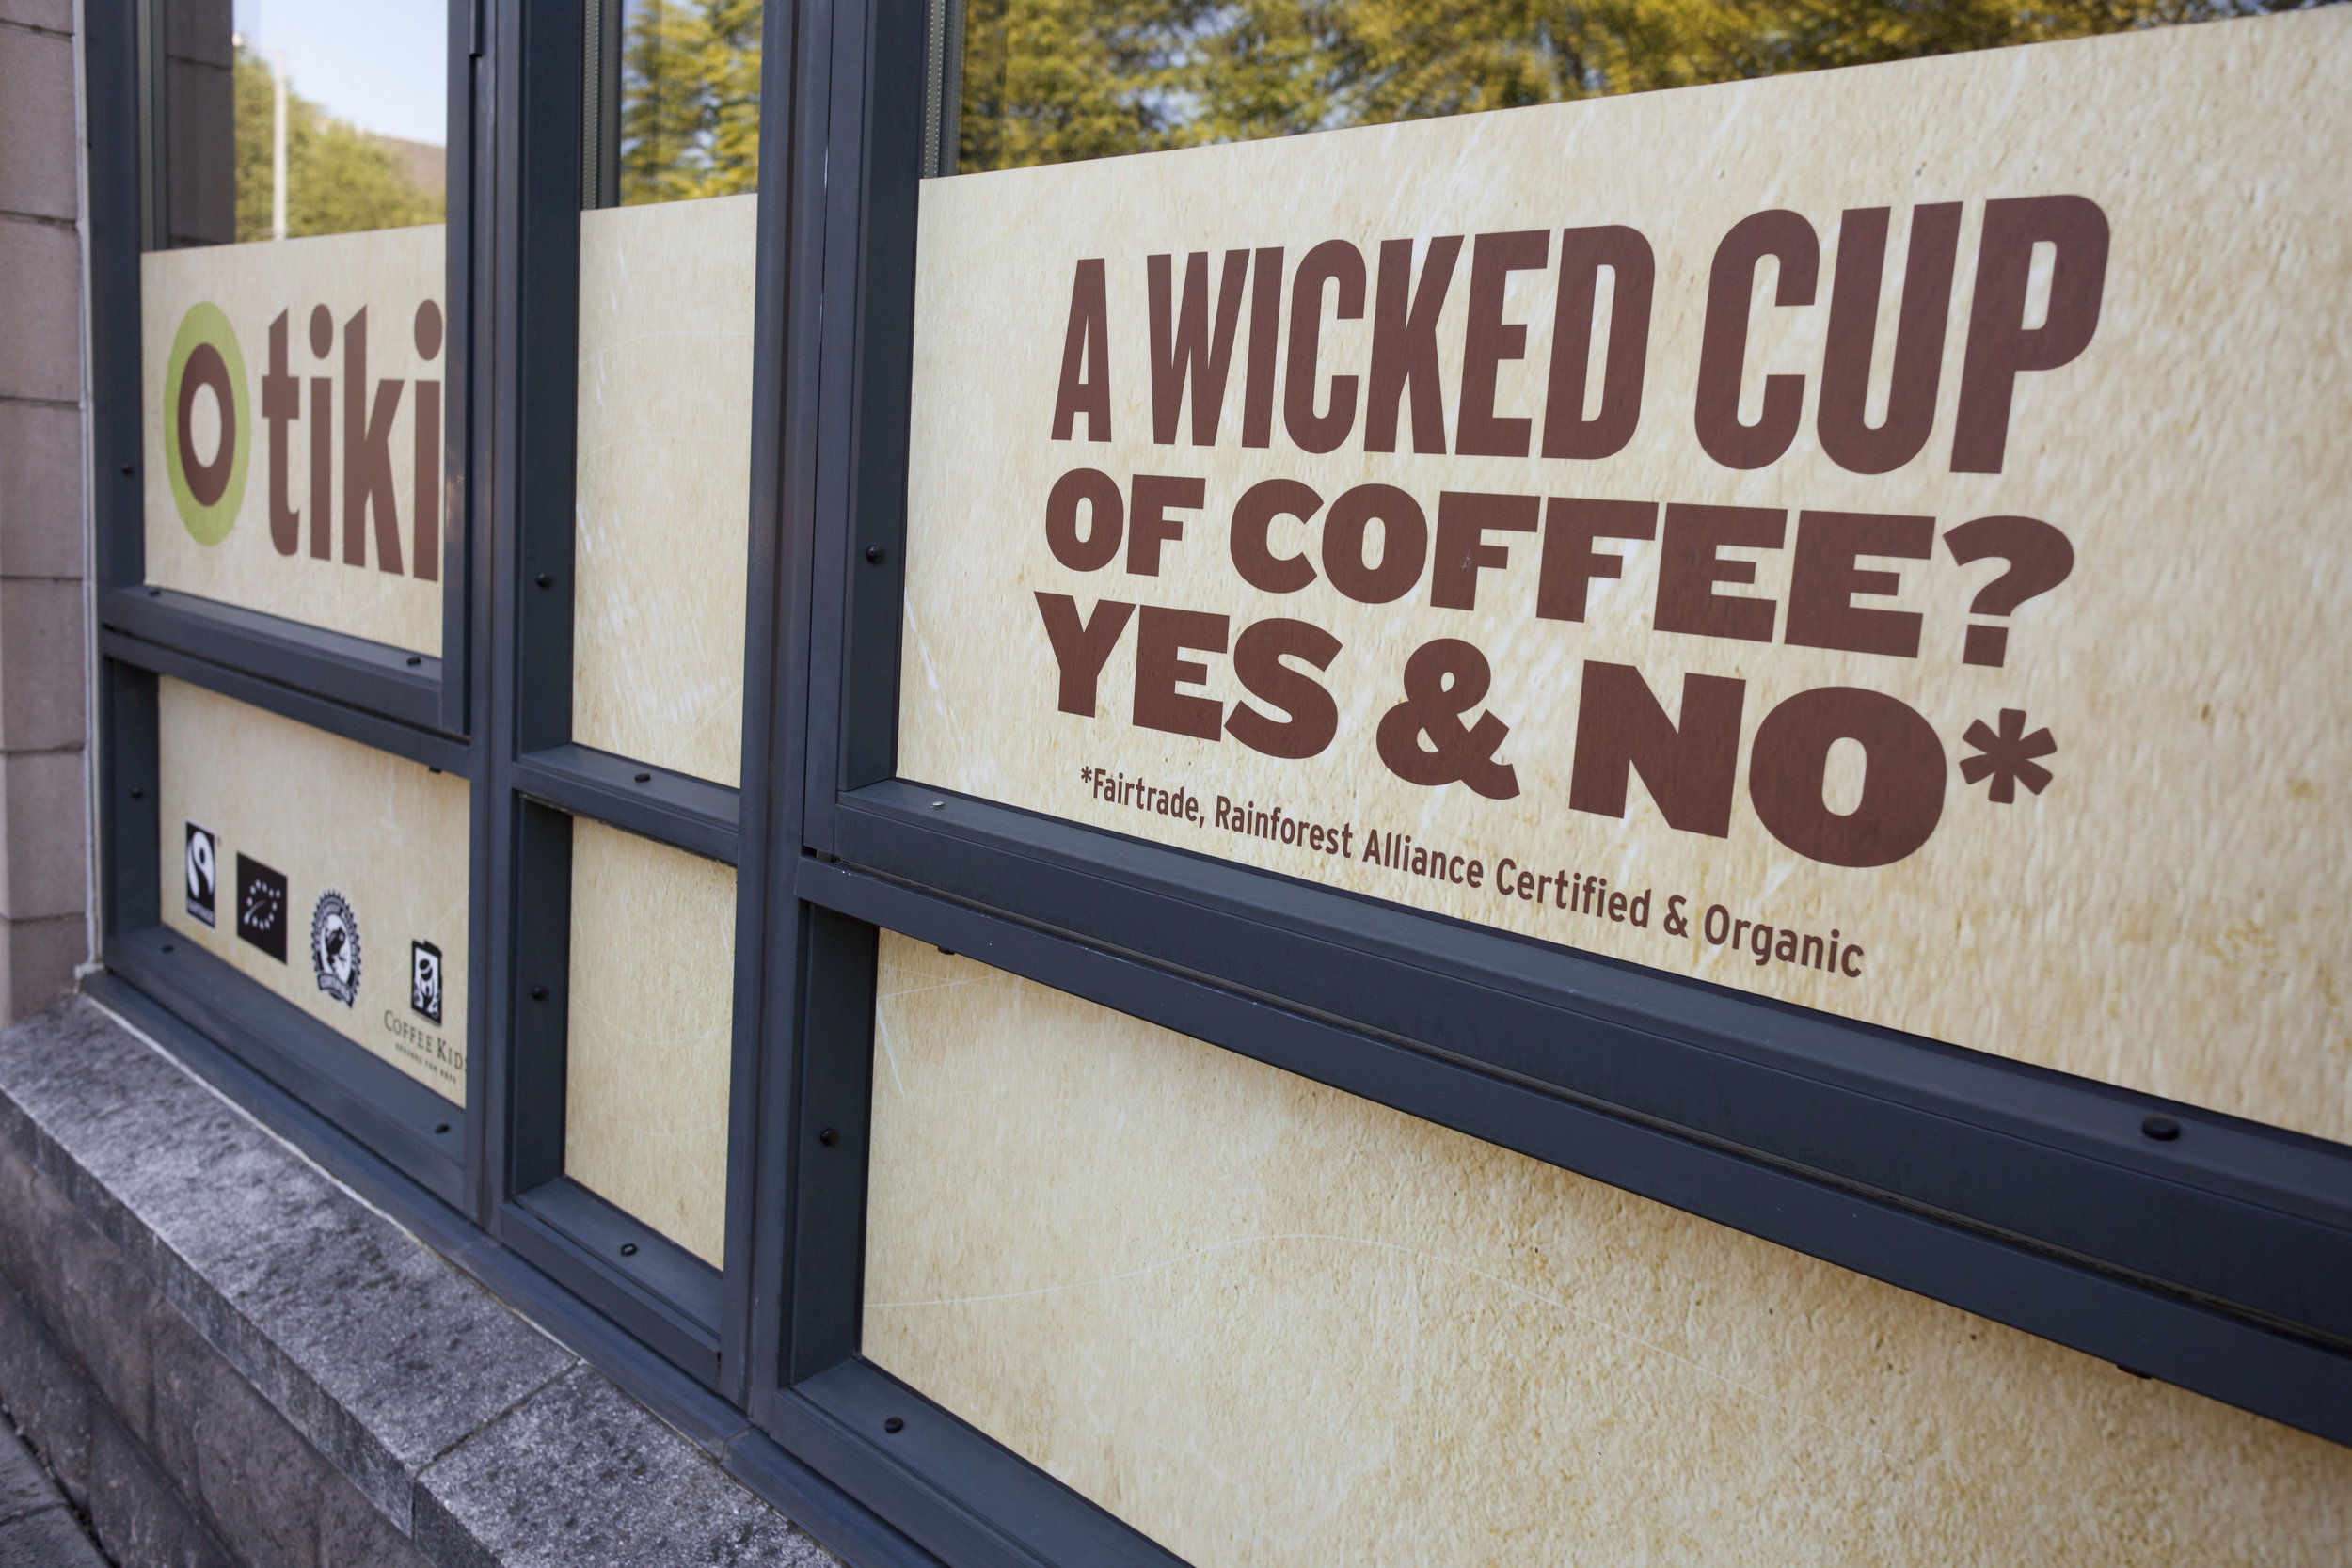 Tiki coffee window vinyl.jpg